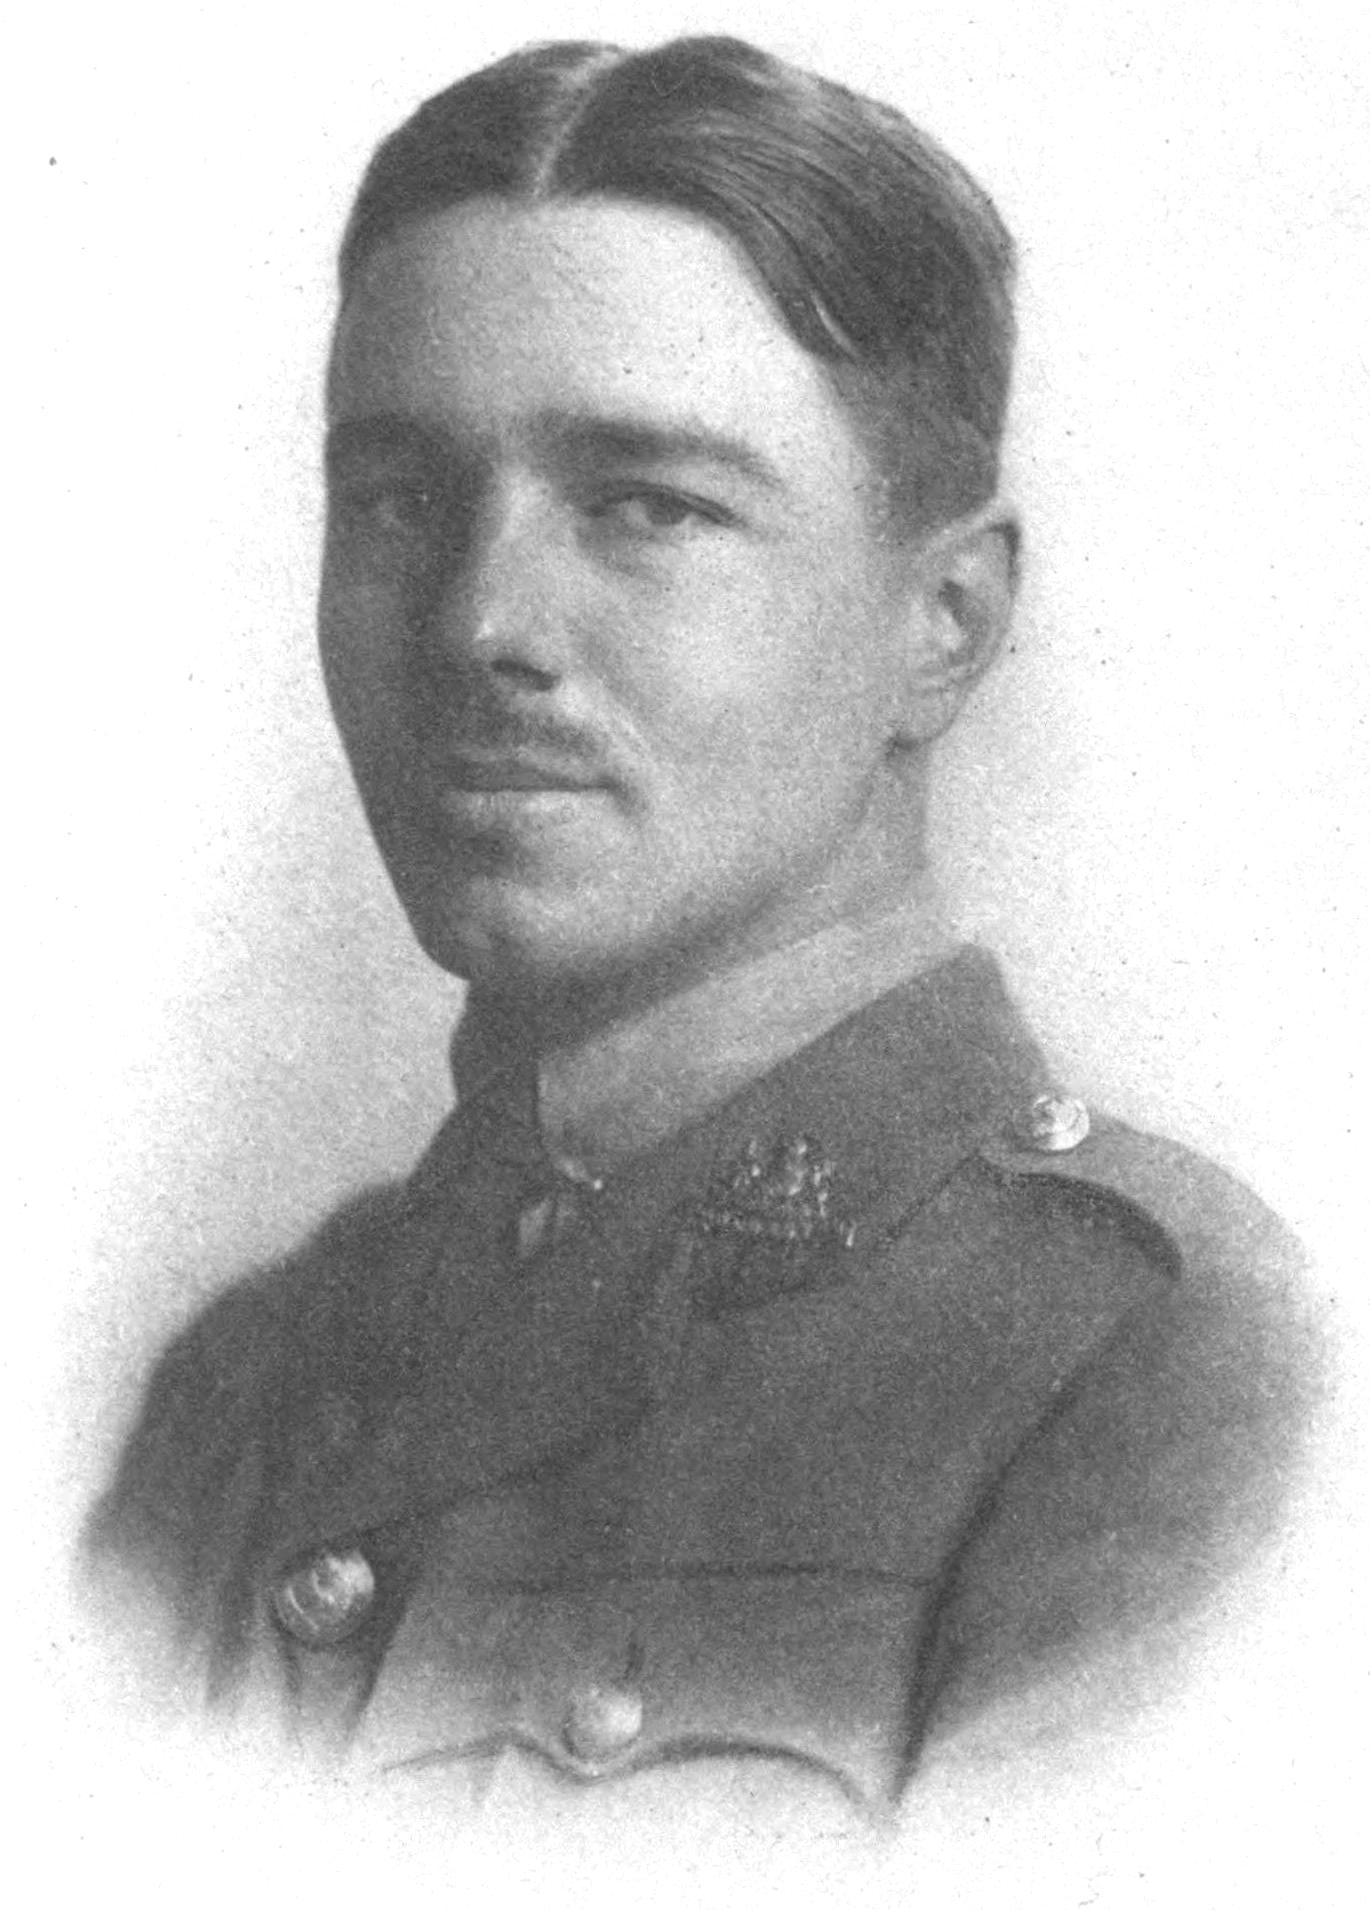 Image of Wilfred Owen